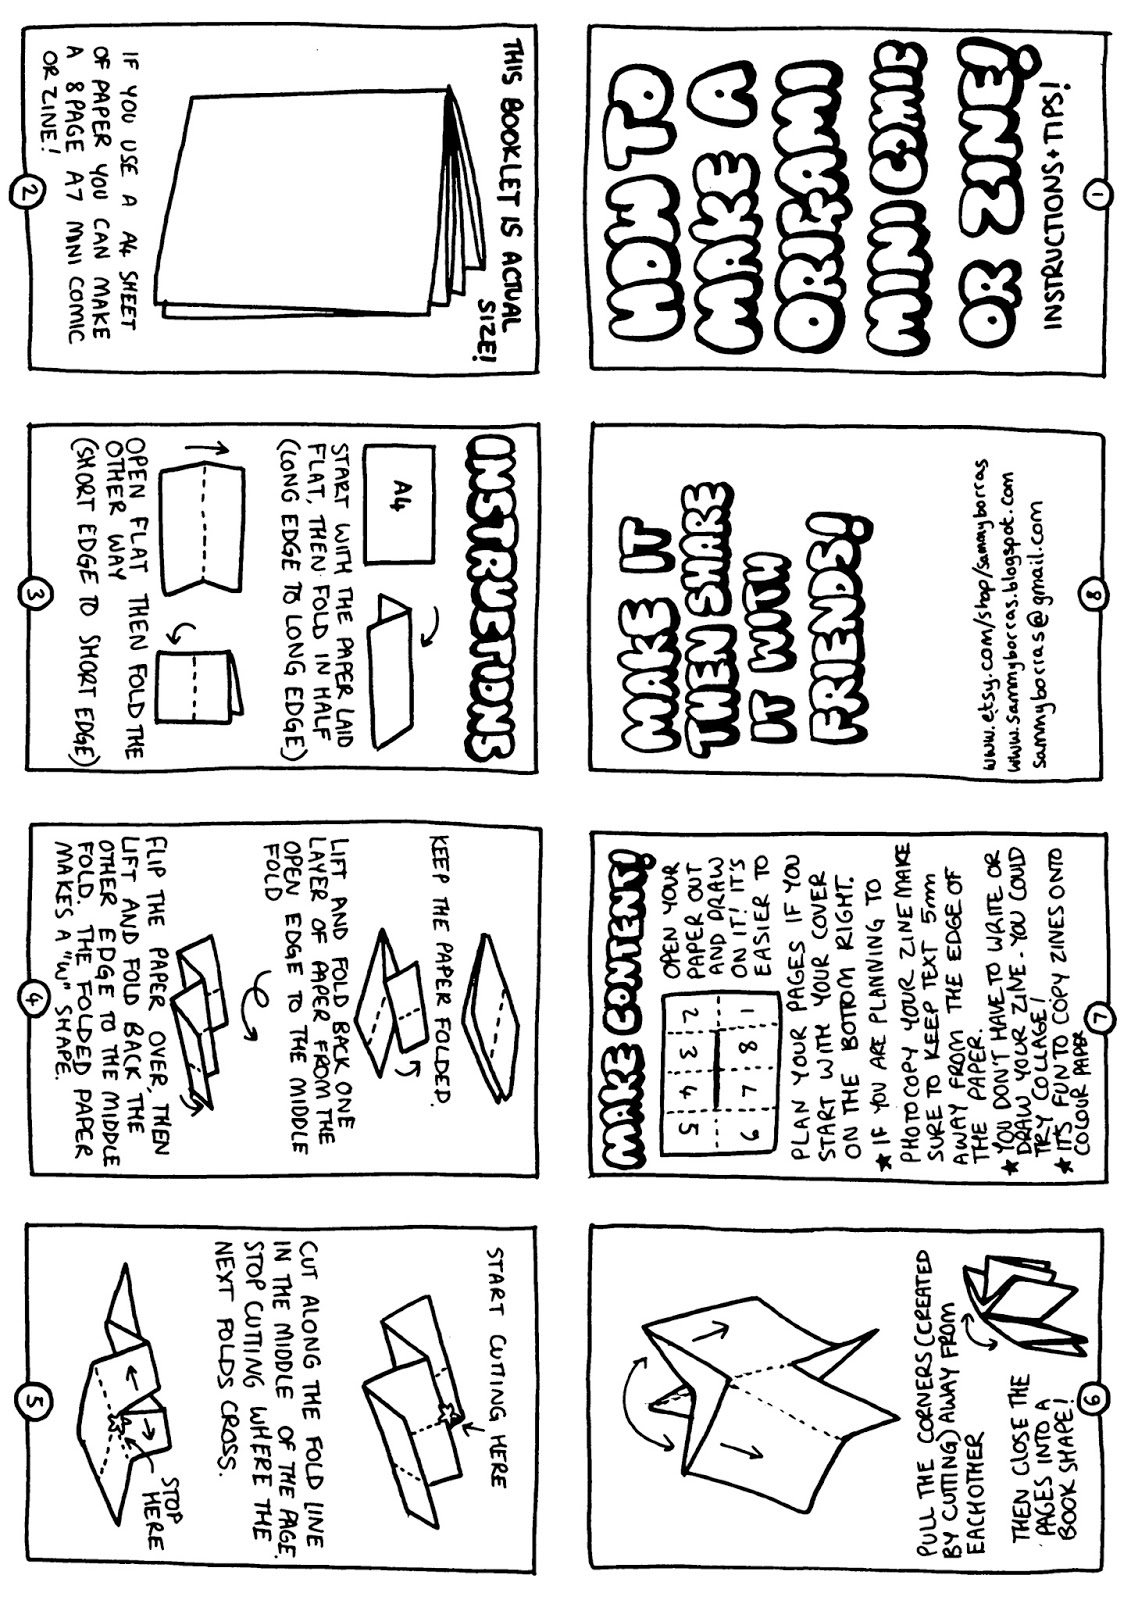 How To Make A Mini Zine This Is A Good Template With Great